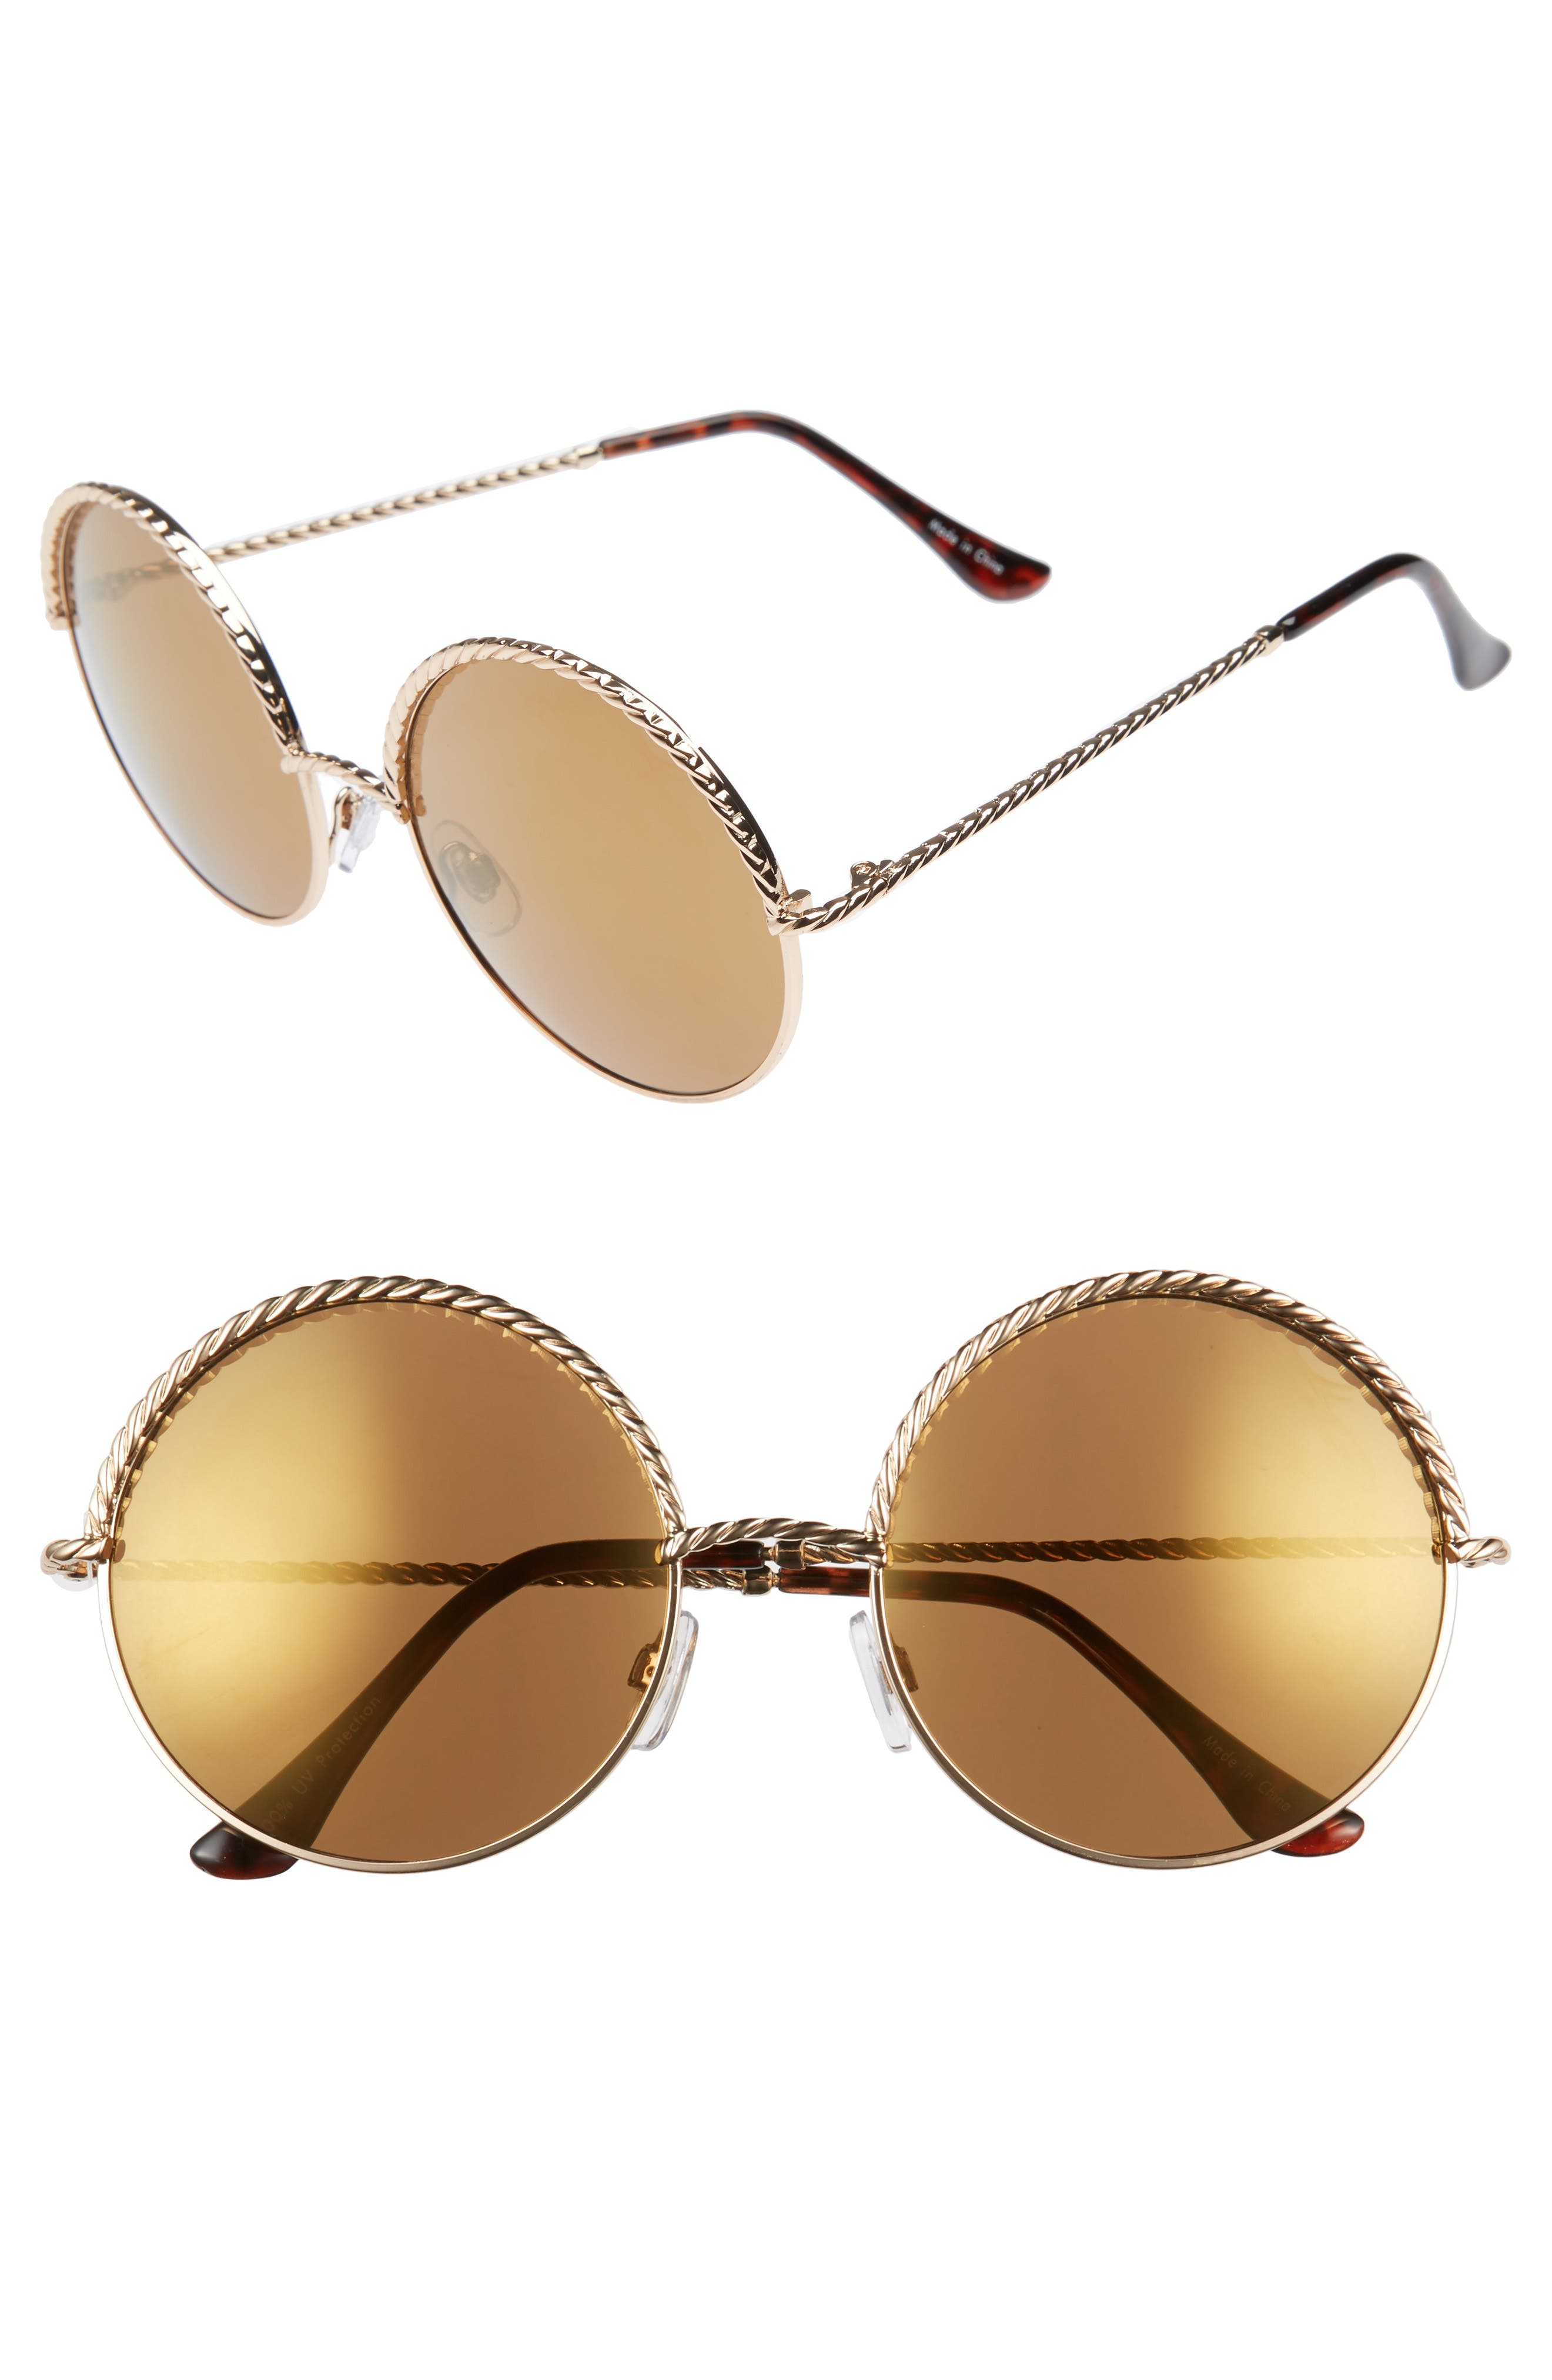 58mm Chain Trim Round Sunglasses,                         Main,                         color, Gold/ Brown